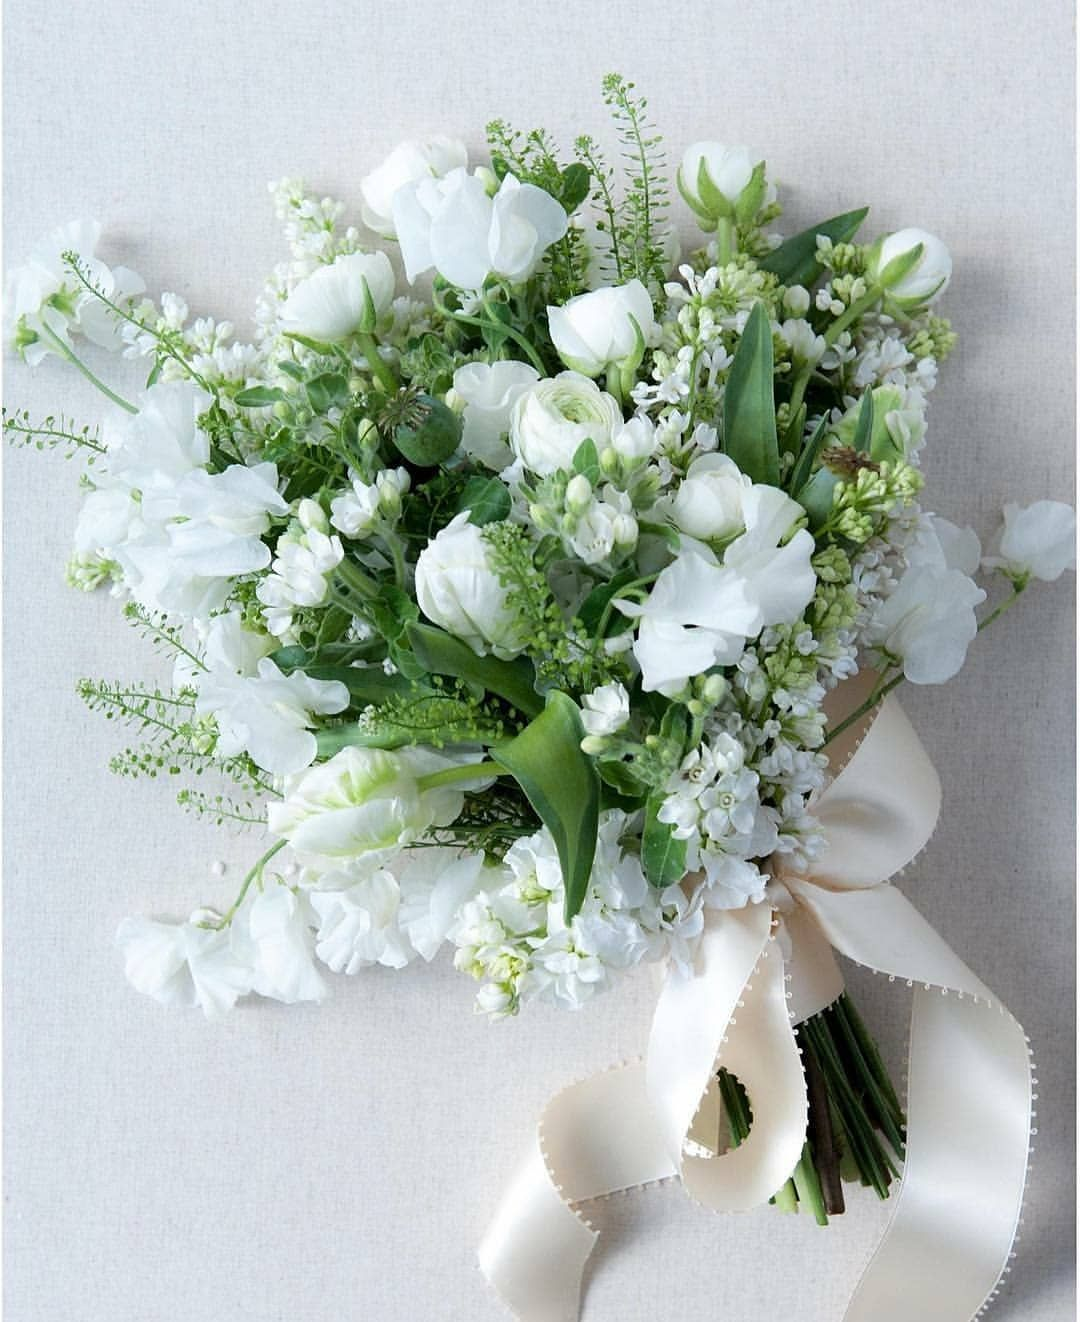 Vermont Wedding Flowers: Perfect Bouquet For That Winter Into Spring #weddingseason